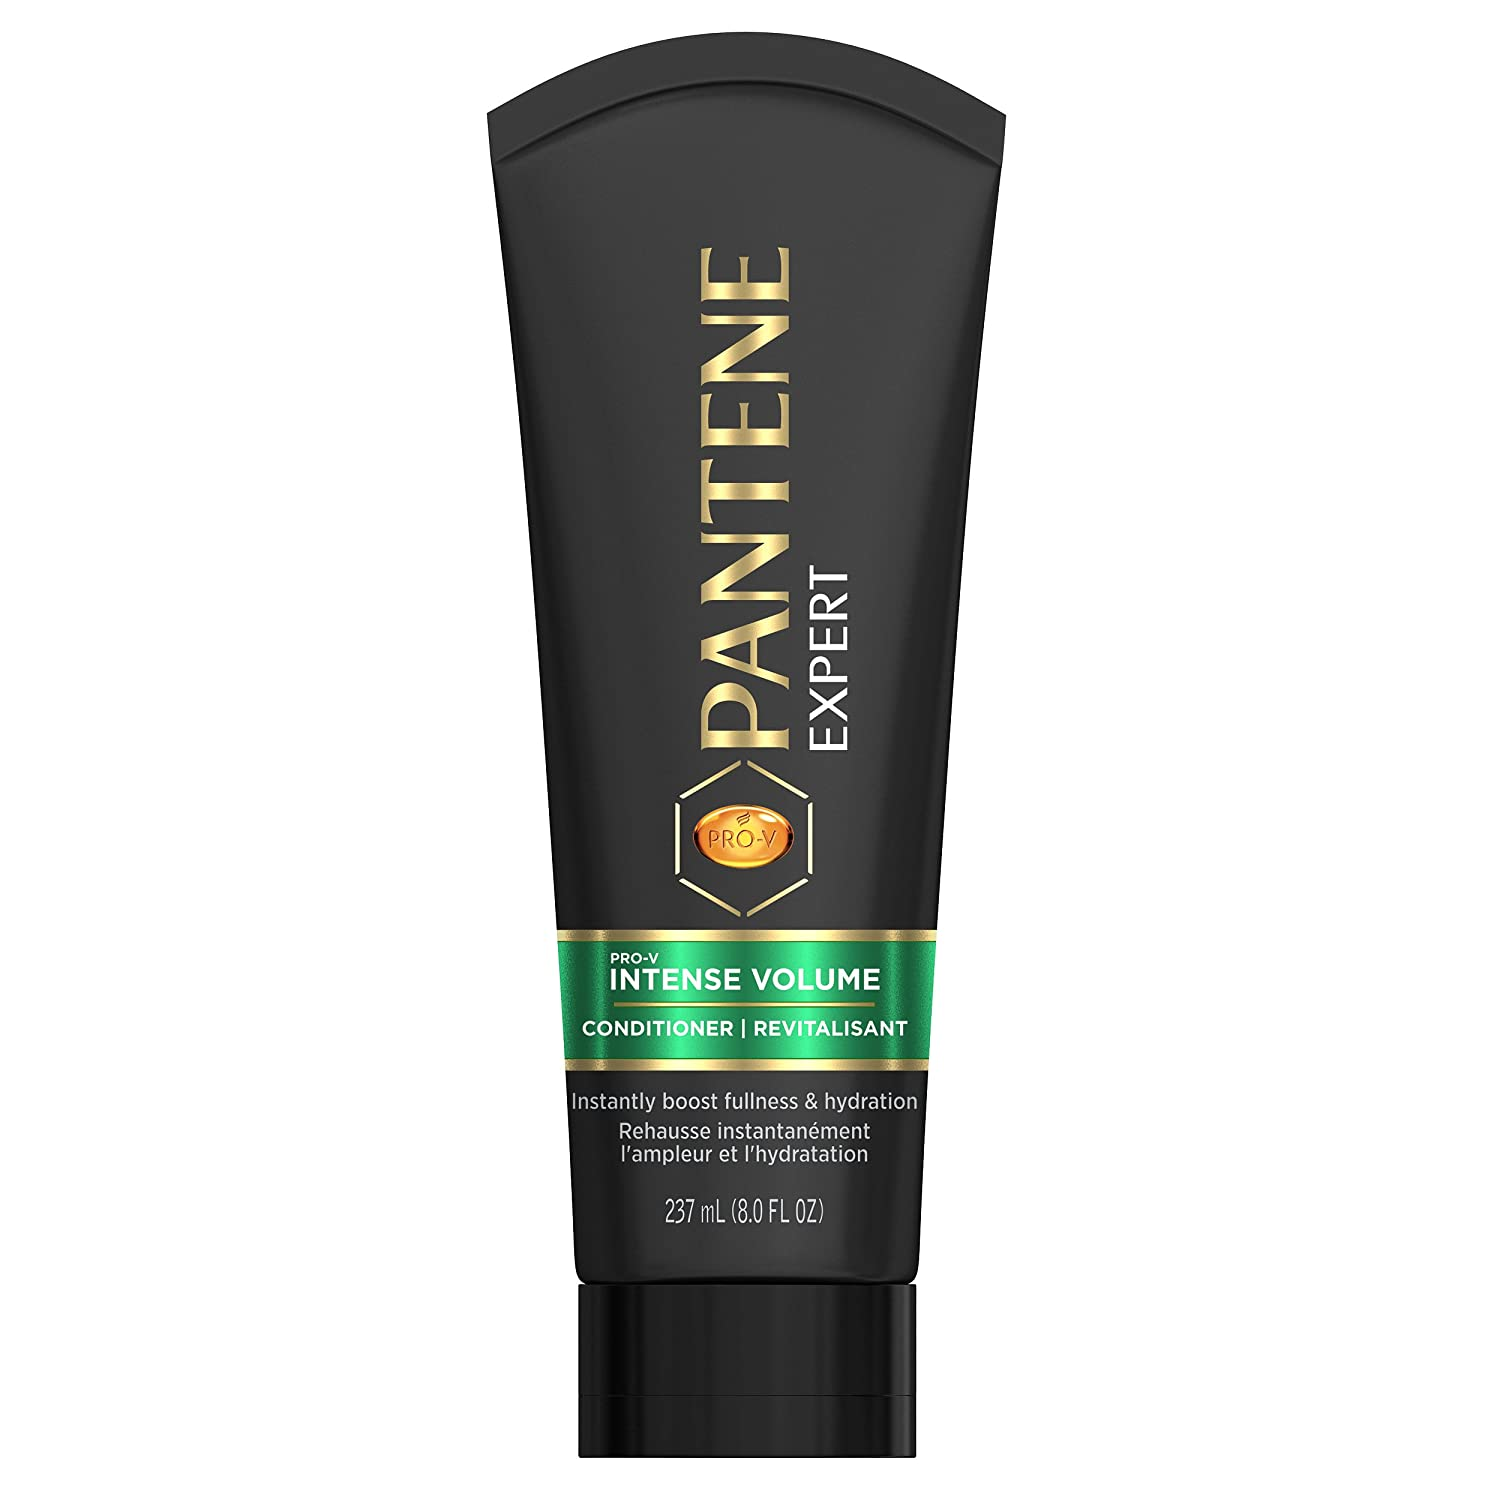 Pantene Expert Pro-V Intense Volume Shampoo, 285 ml Procter and Gamble 10080878181947